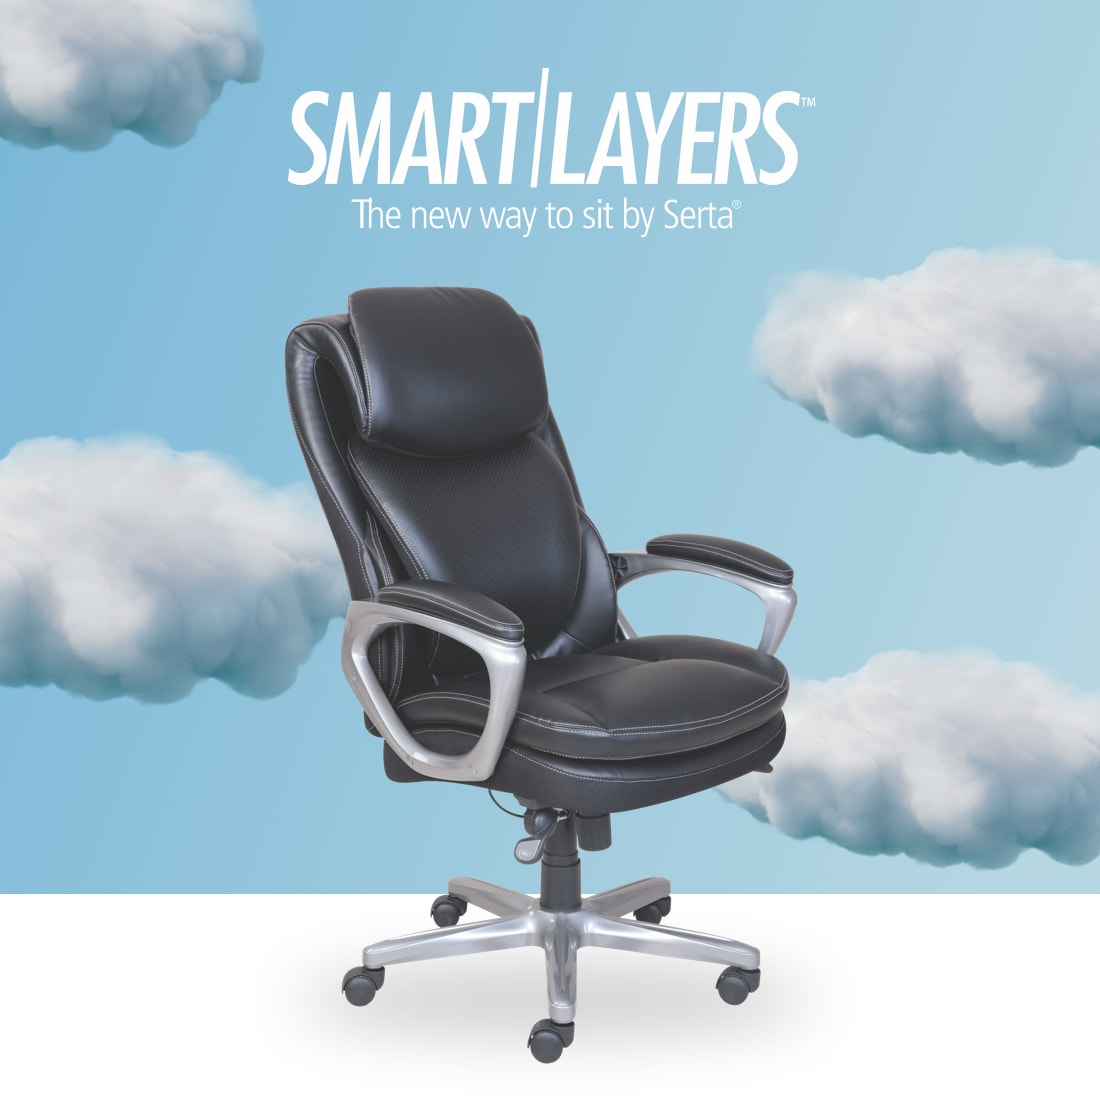 Smartlayers- The new way to sit by Serta